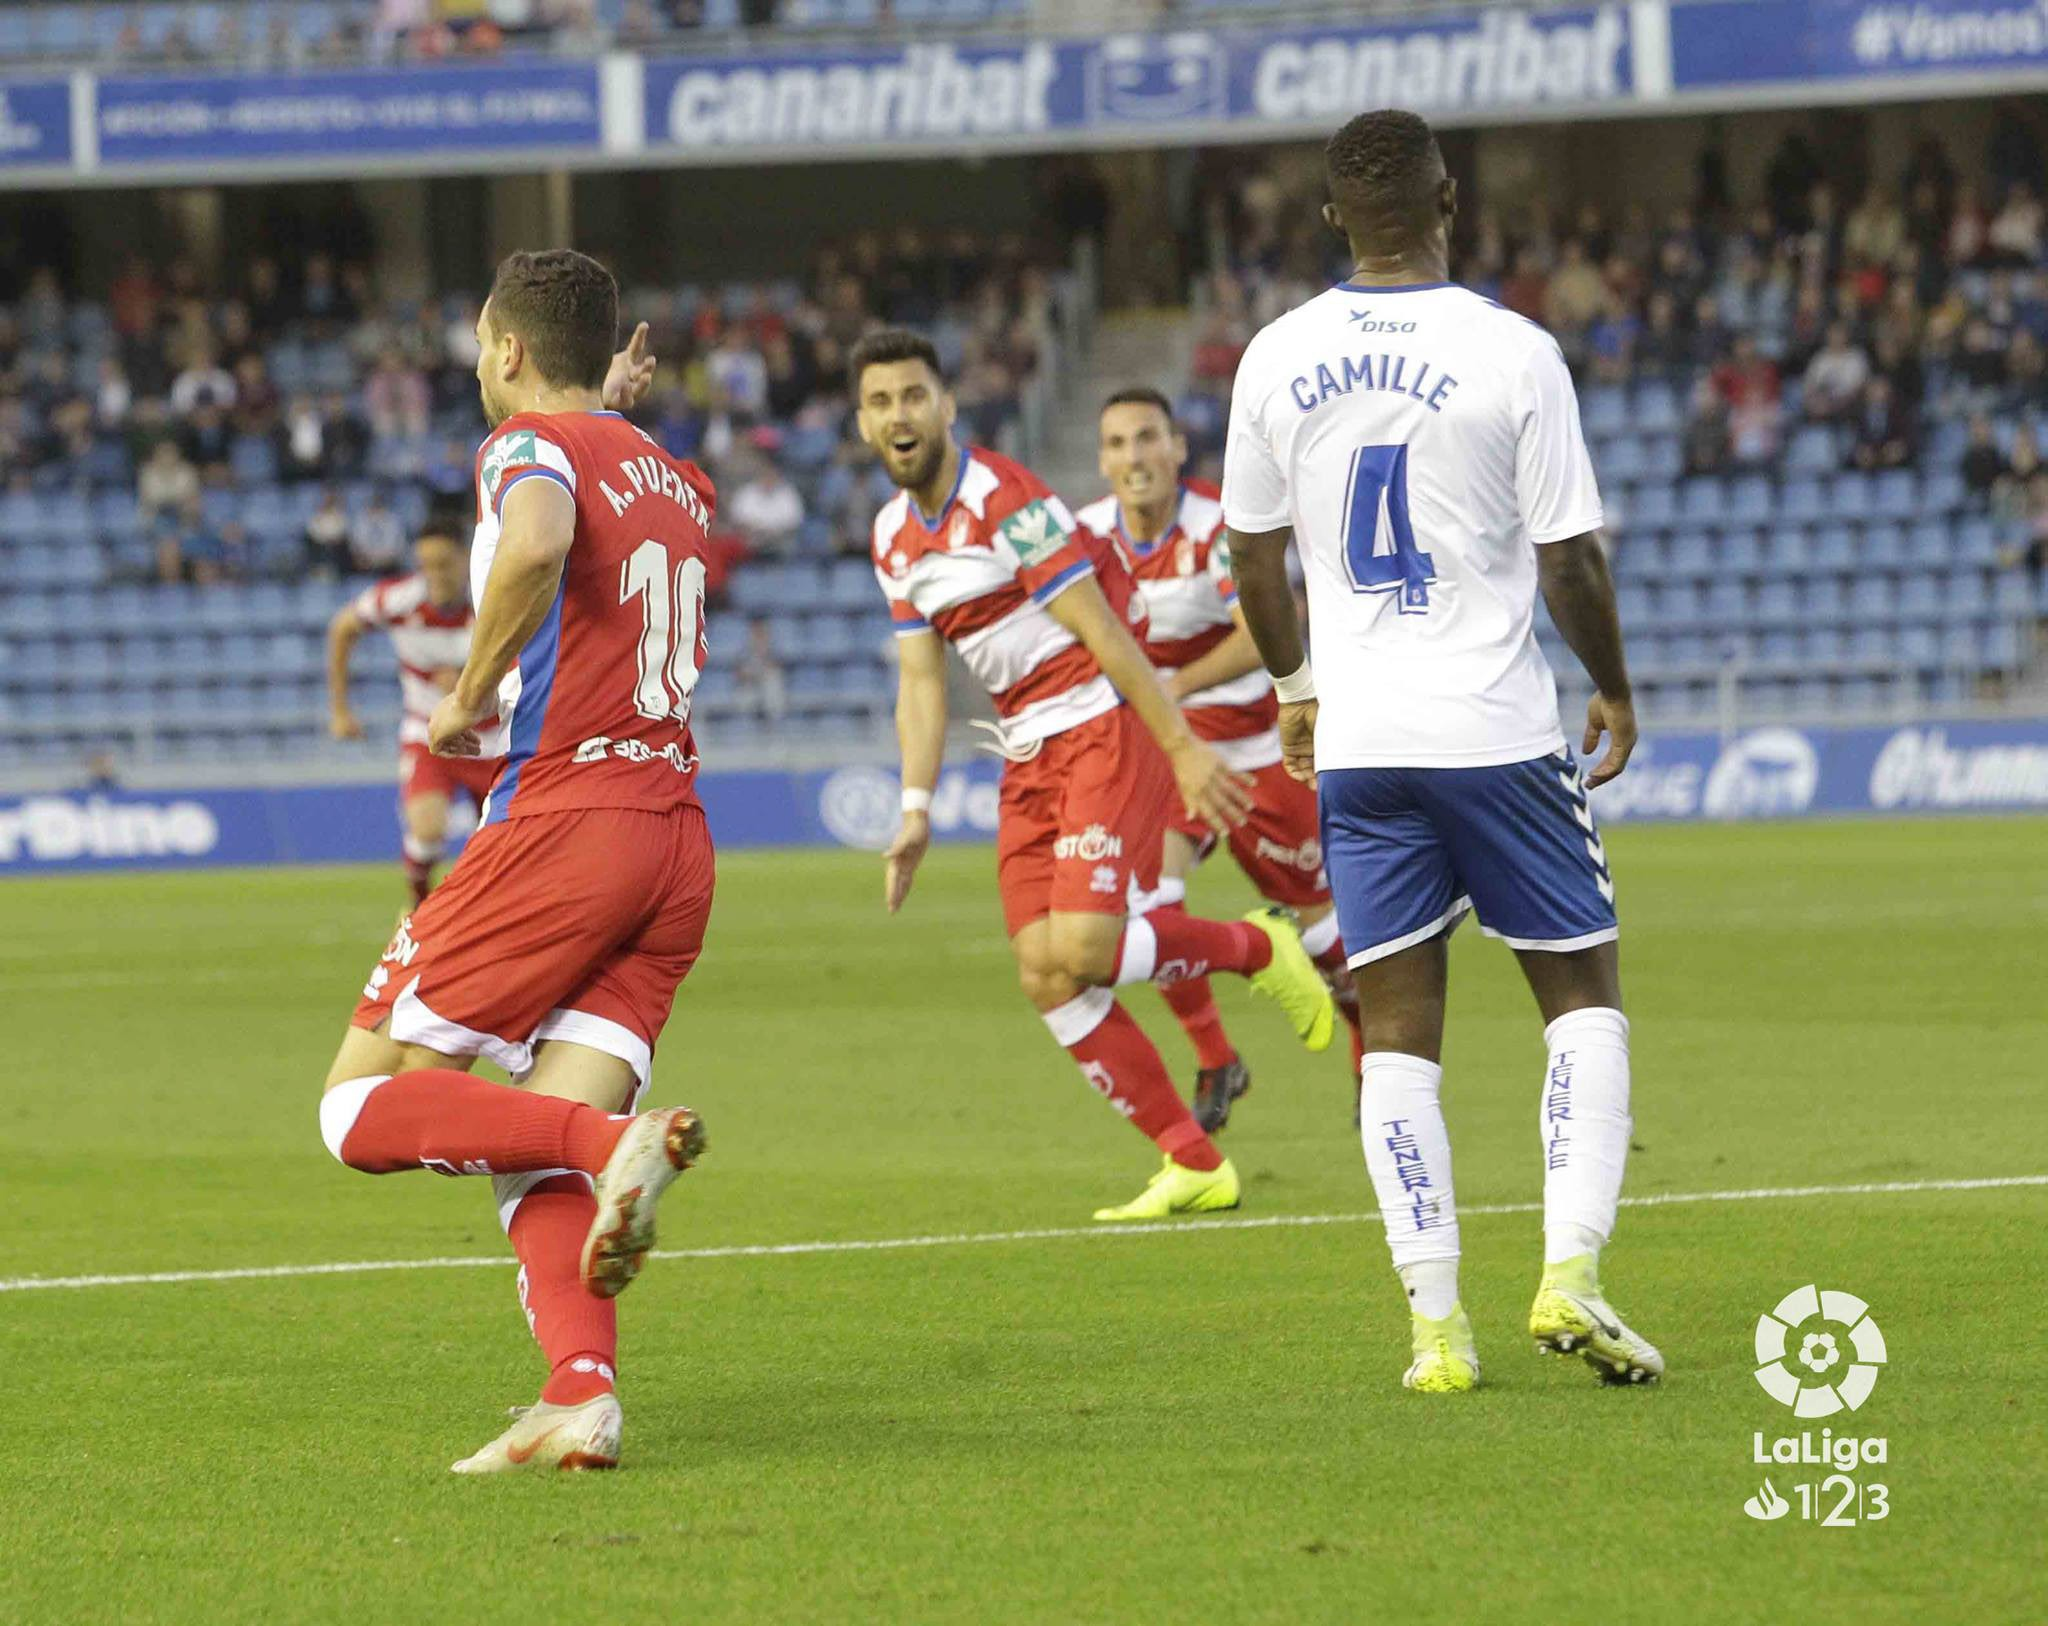 CF Granada maintain their lead at the top of the table and take on second-placed Albacete!